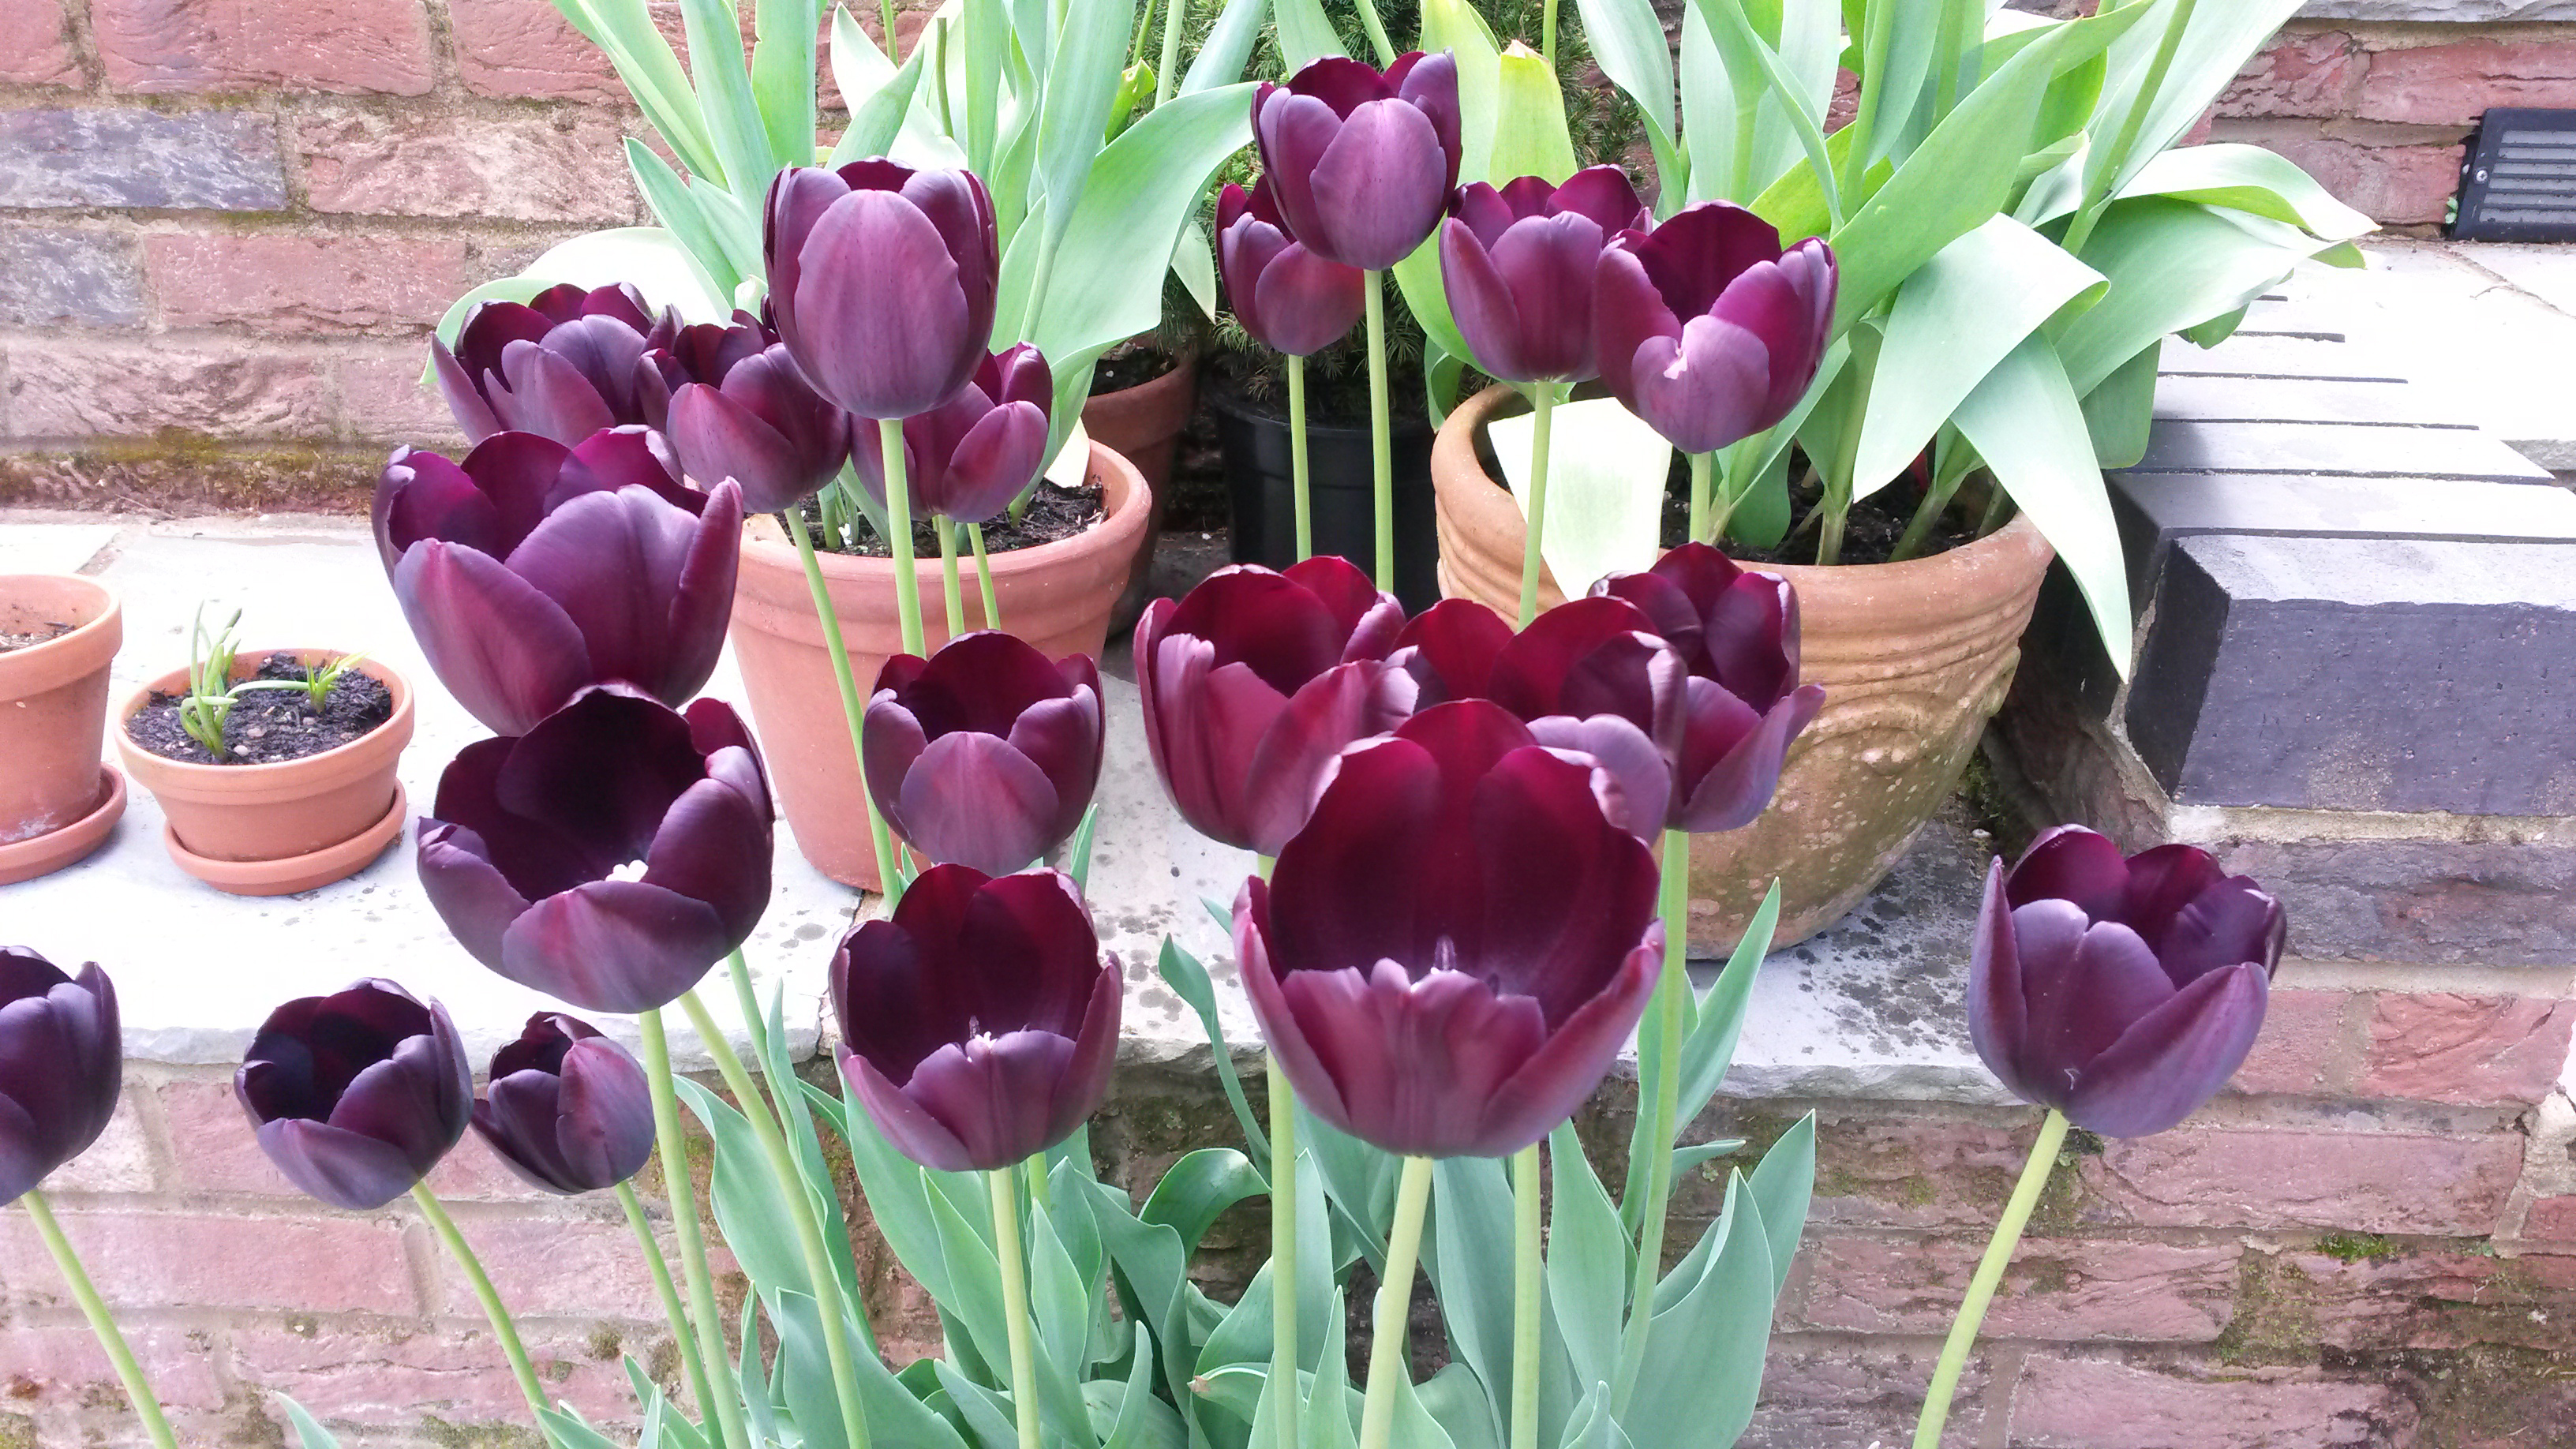 Tulipa 'Queen of Night' is a reliable variety for a pot (Hannah Stephenson/PA)